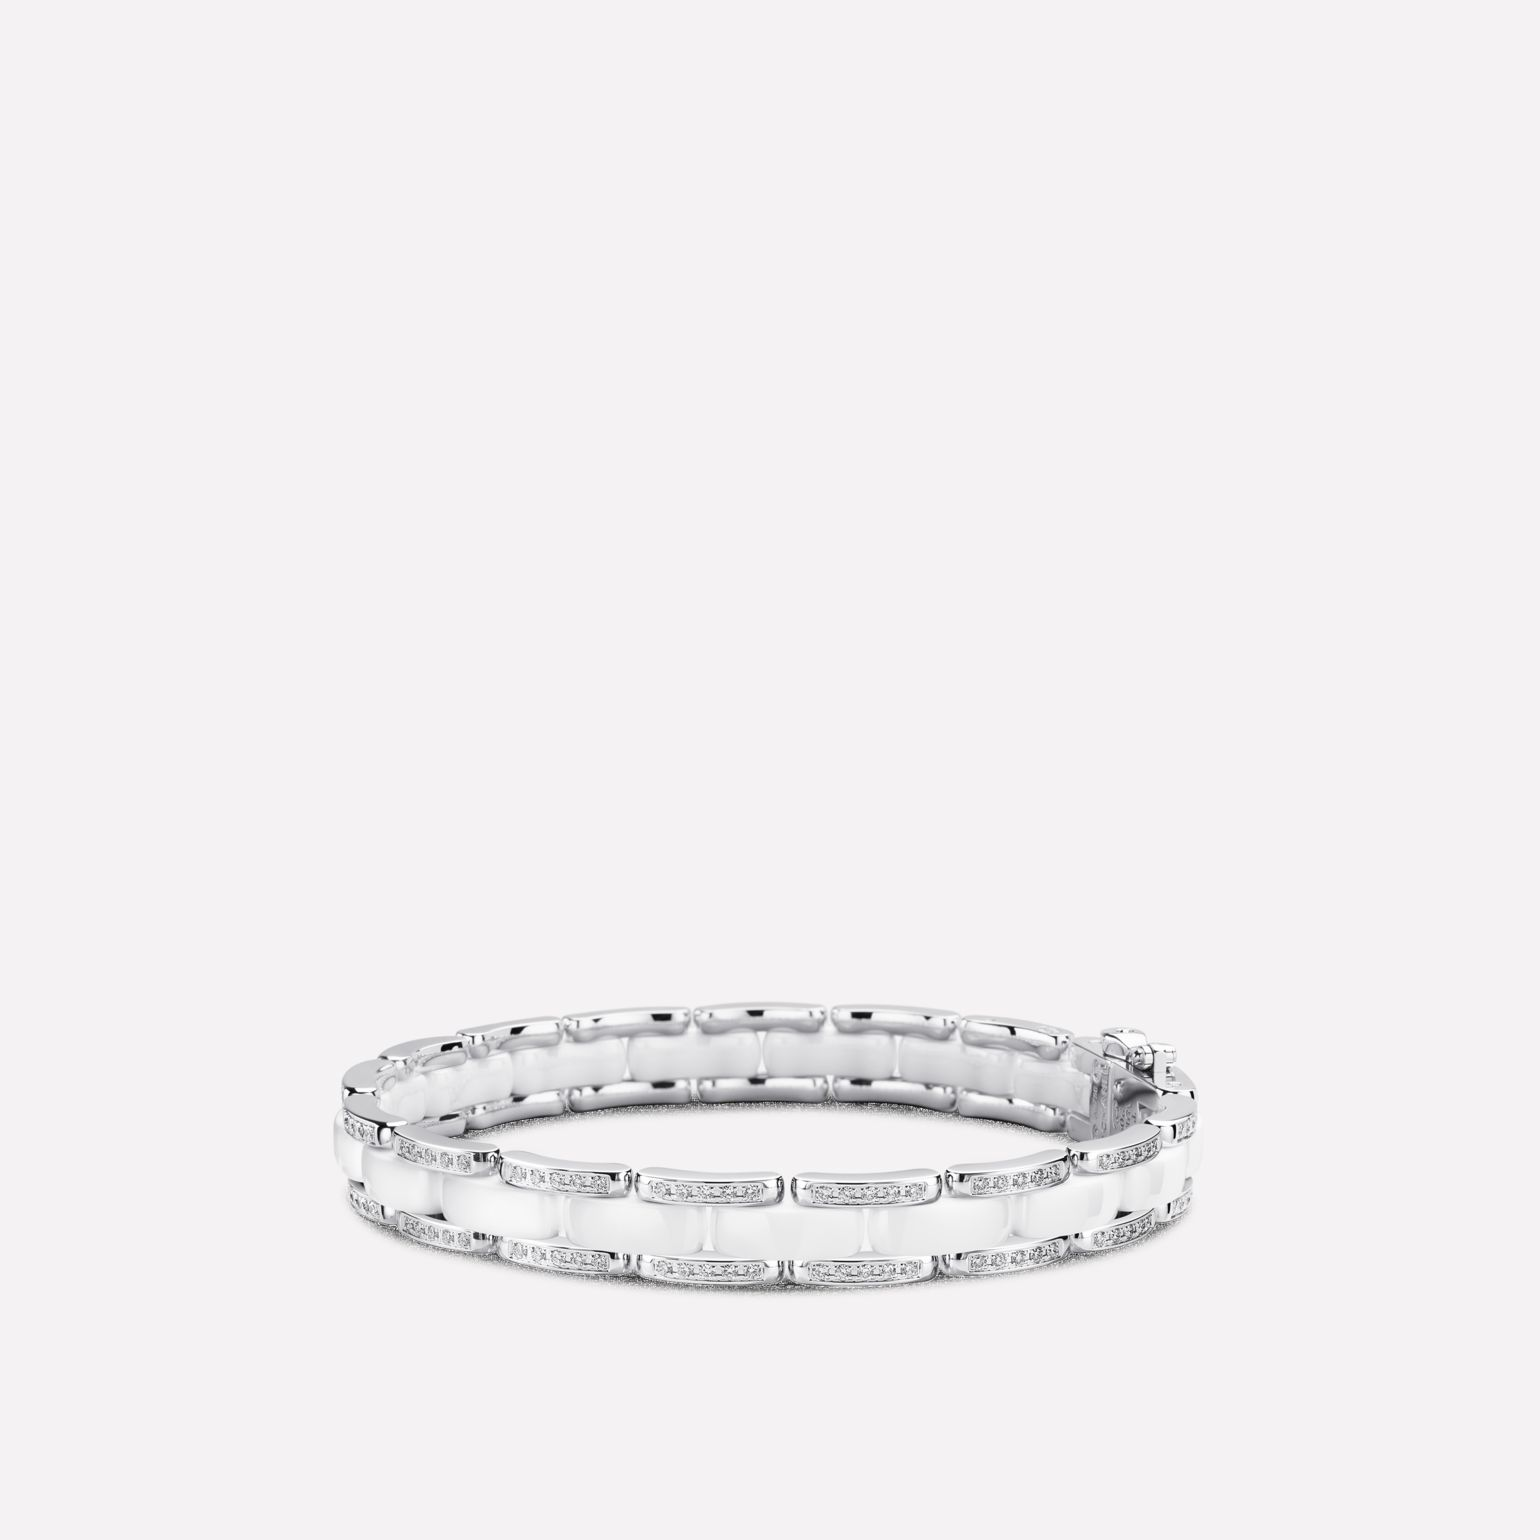 Ultra bracelet 18K white gold, diamonds, white ceramic